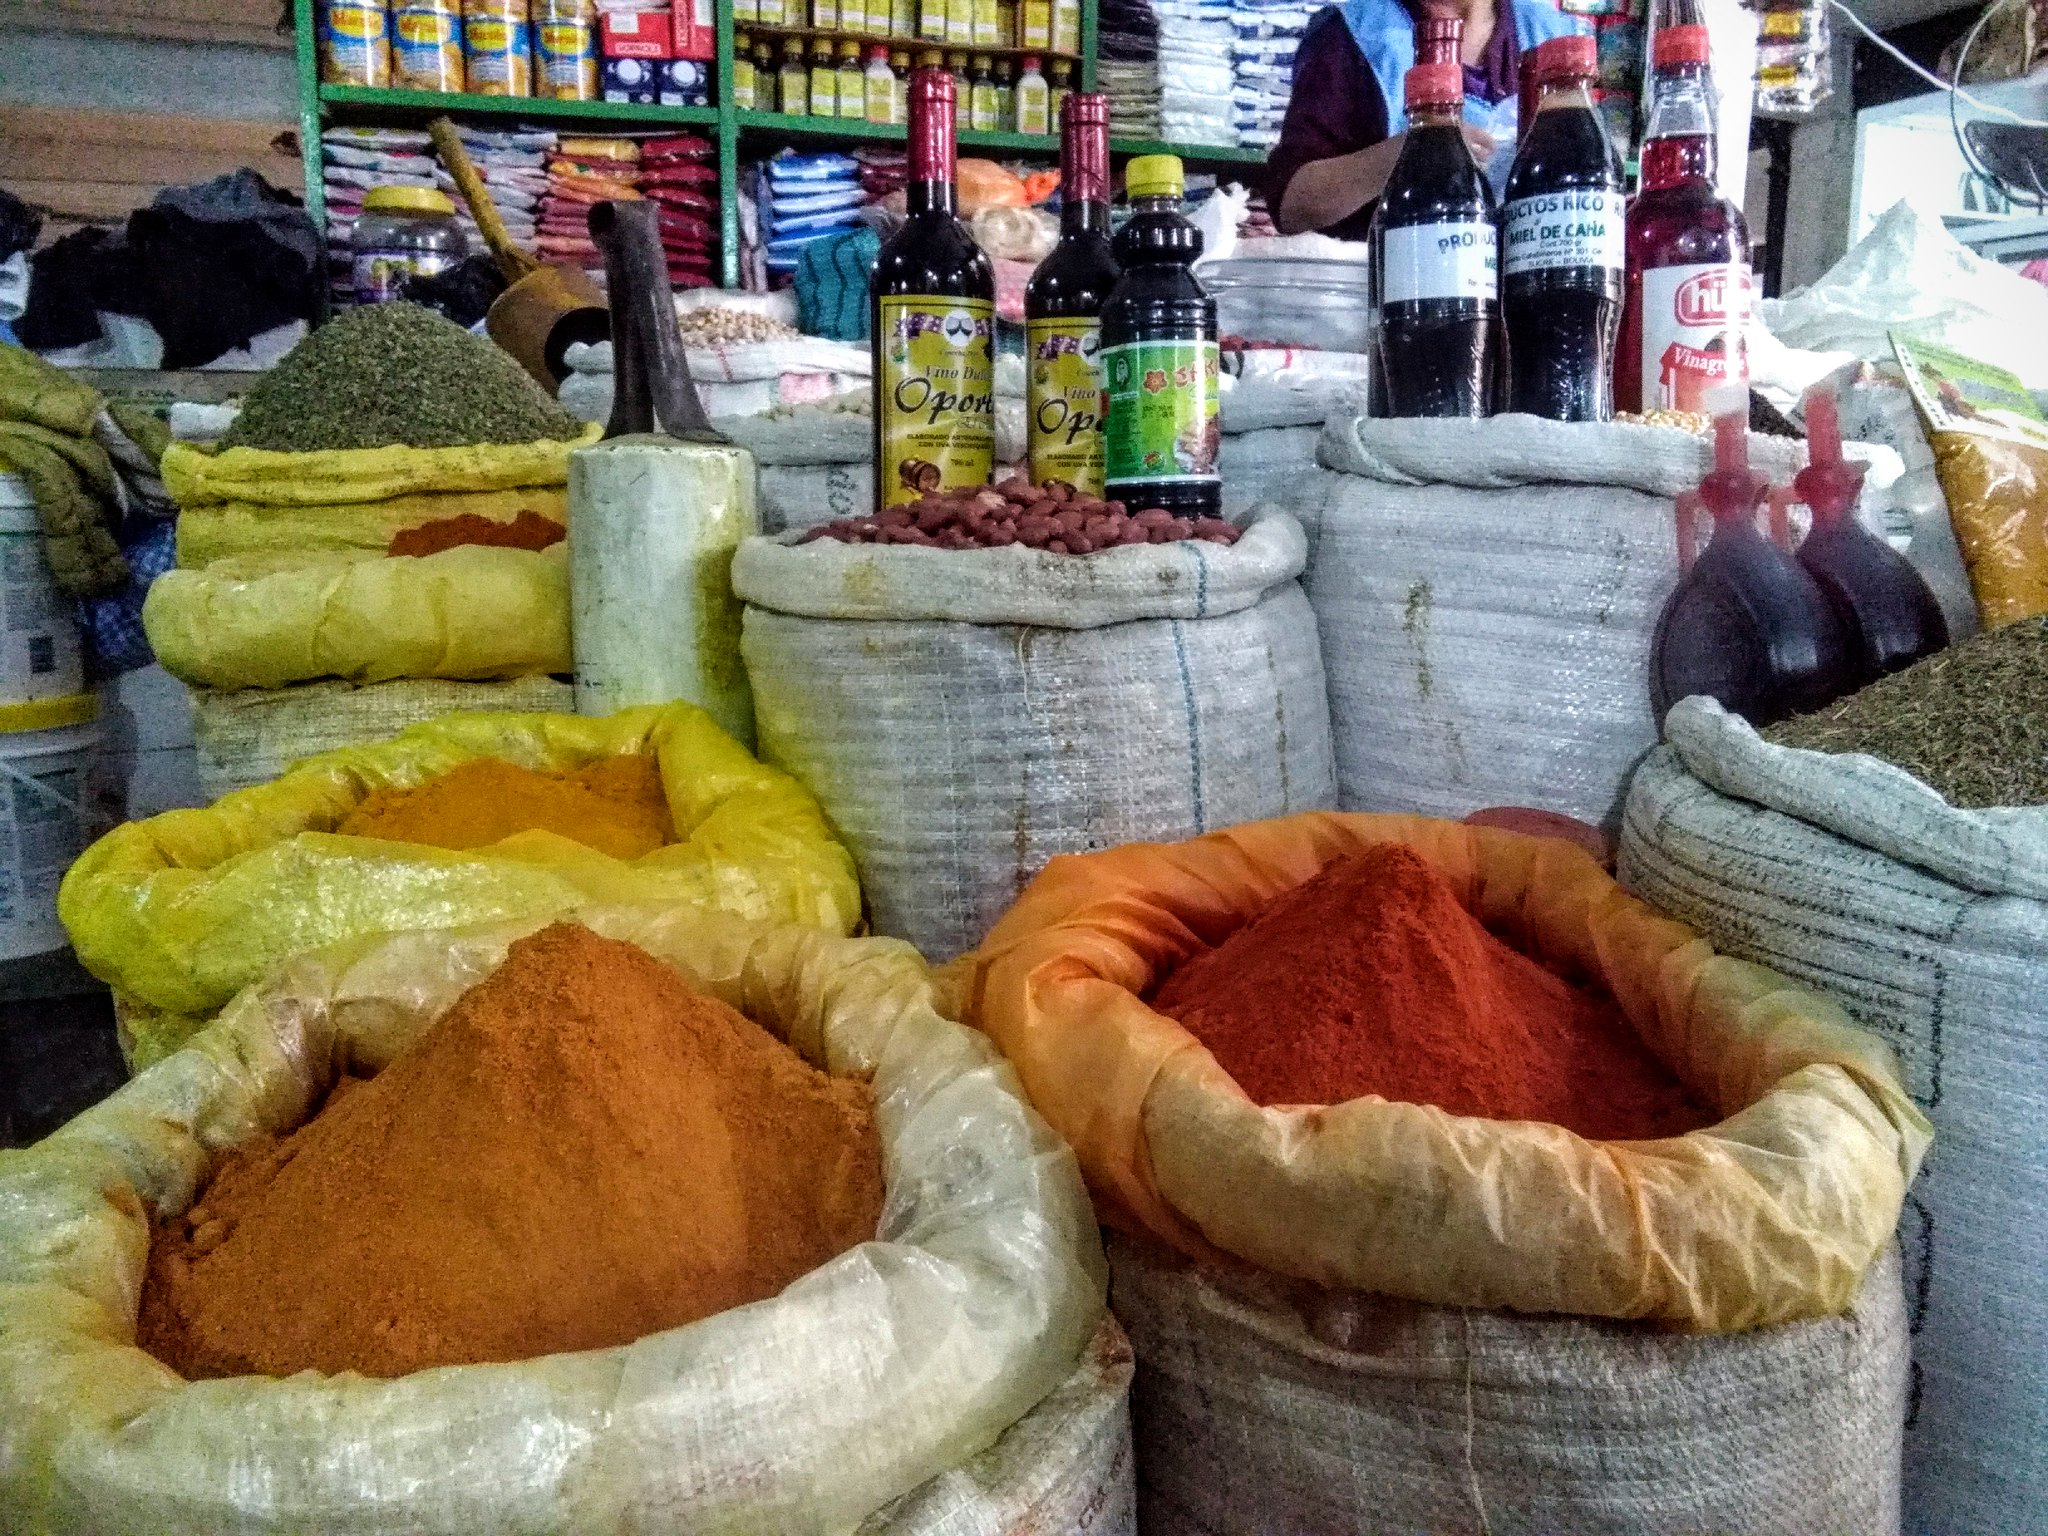 Spice stall in Sucre market